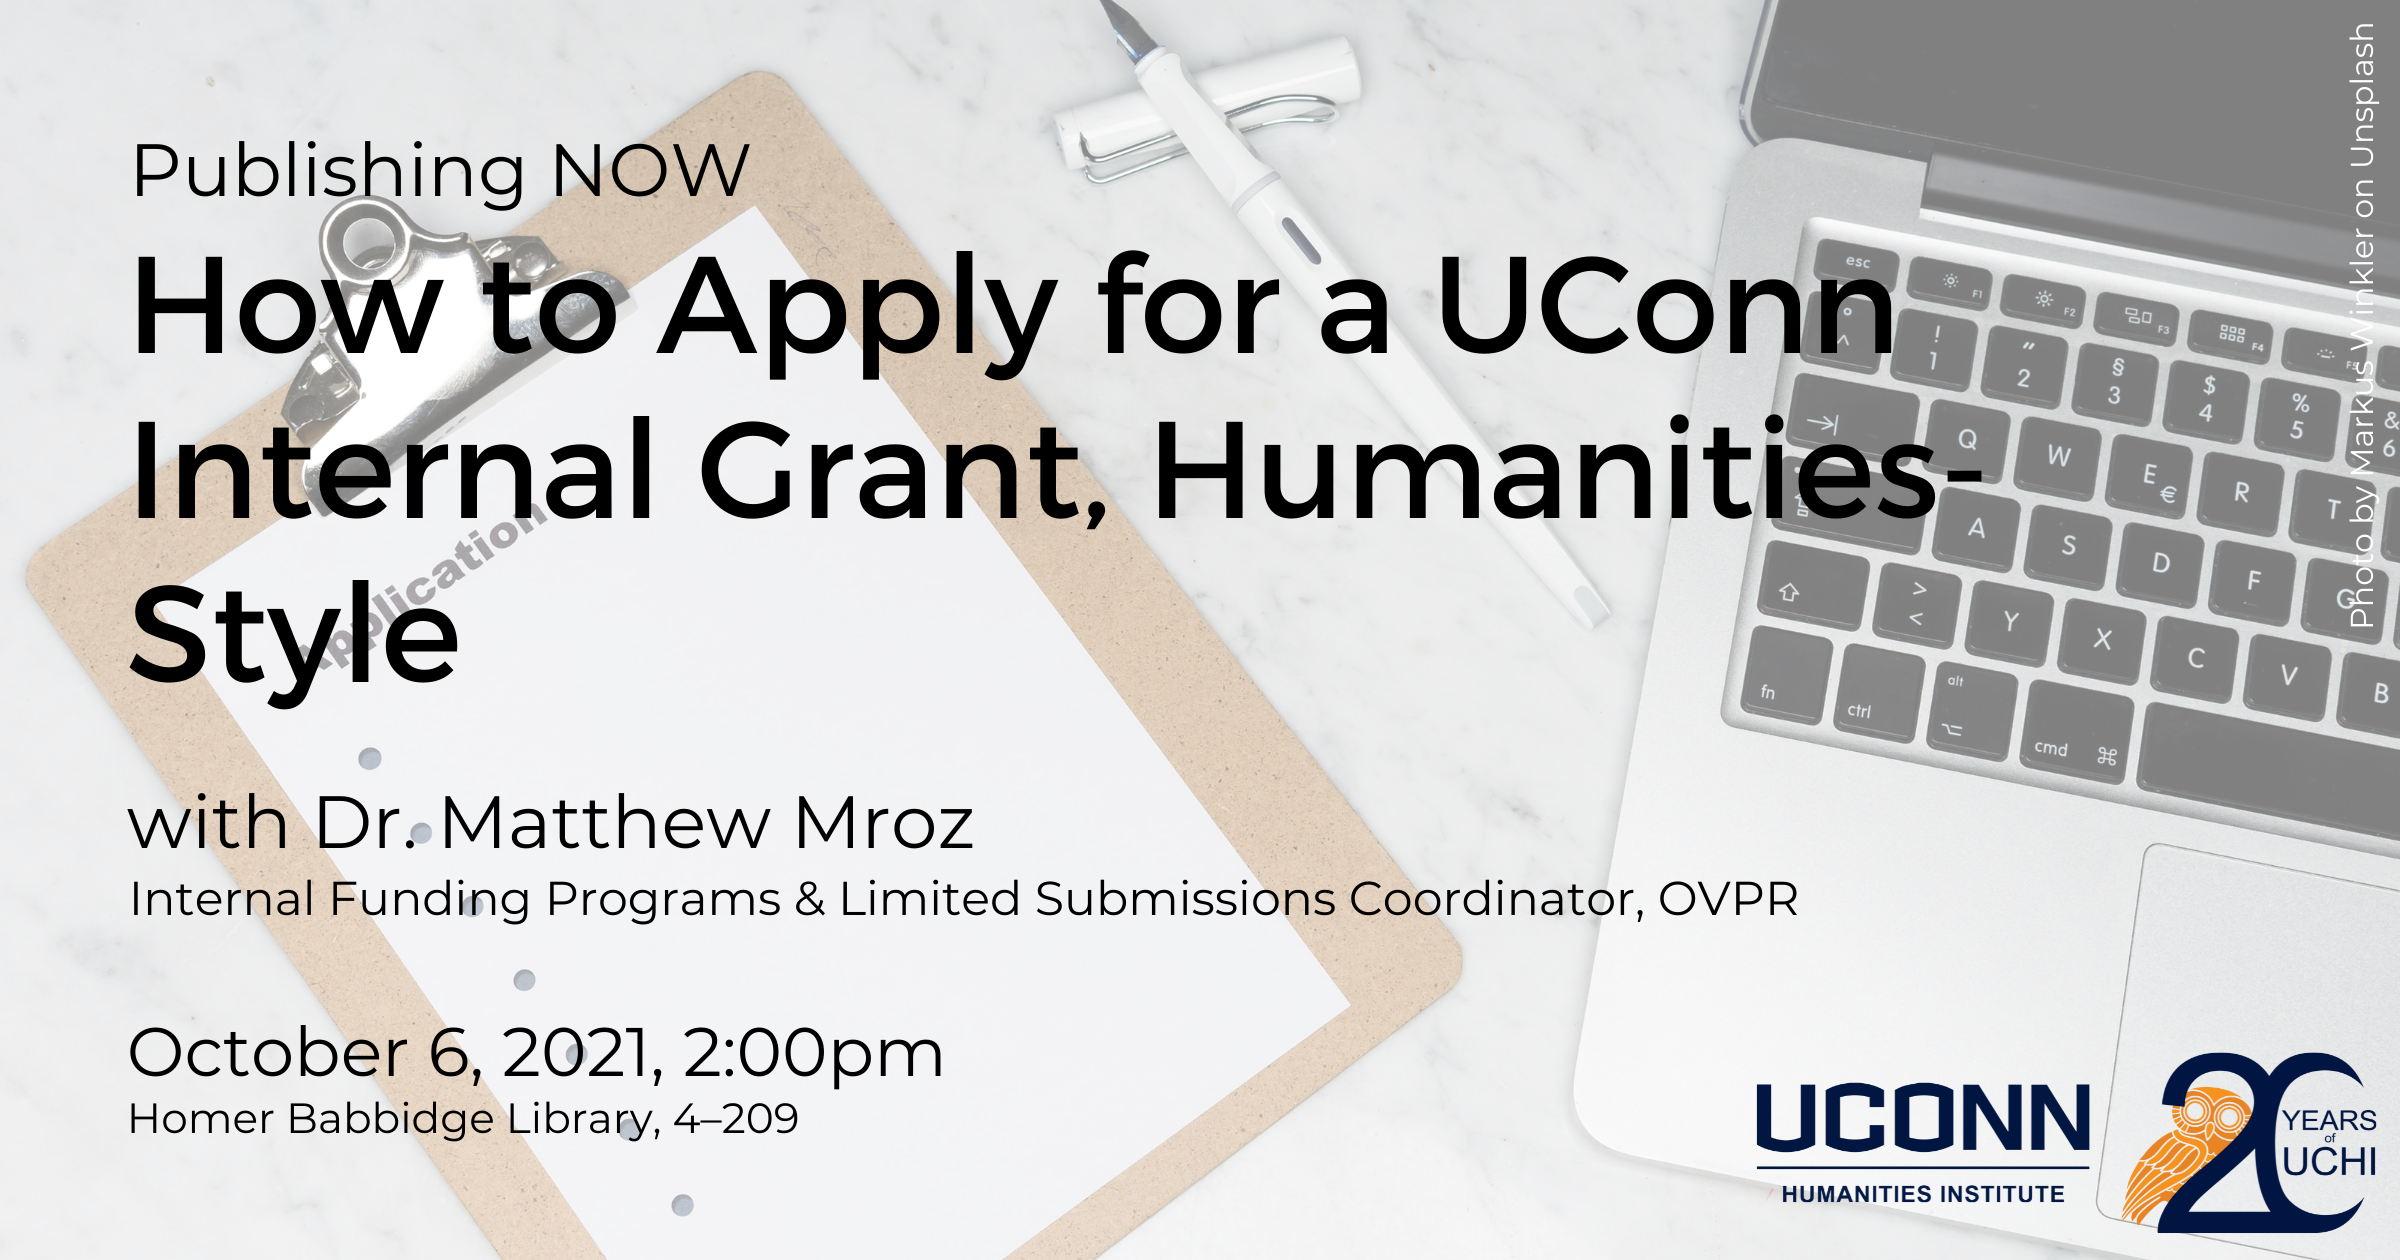 Publishing NOW: How to apply for a UConn Internal Grant, Humanities-Style. with Dr. Matthew Mroz, Internal Funding Coordinator, Office of the Vice President for Research. October 6, 2021, 2:00pm. Homer Babbidge Library 4-209